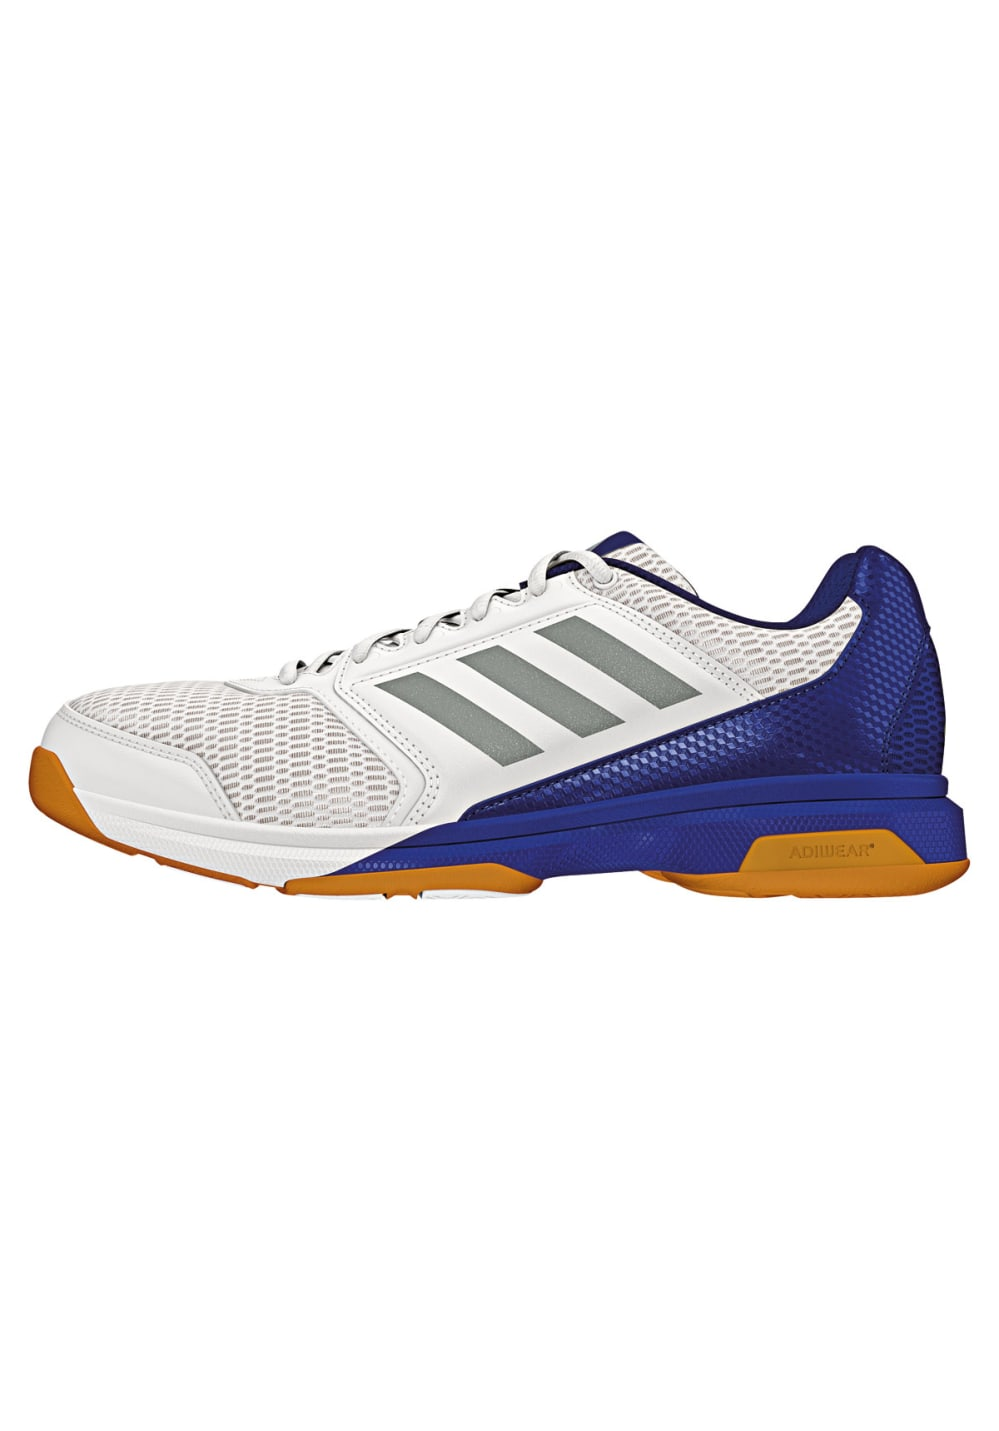 Gris Pour Essence Handball Homme Chaussures Adidas Multido hQdsrCt